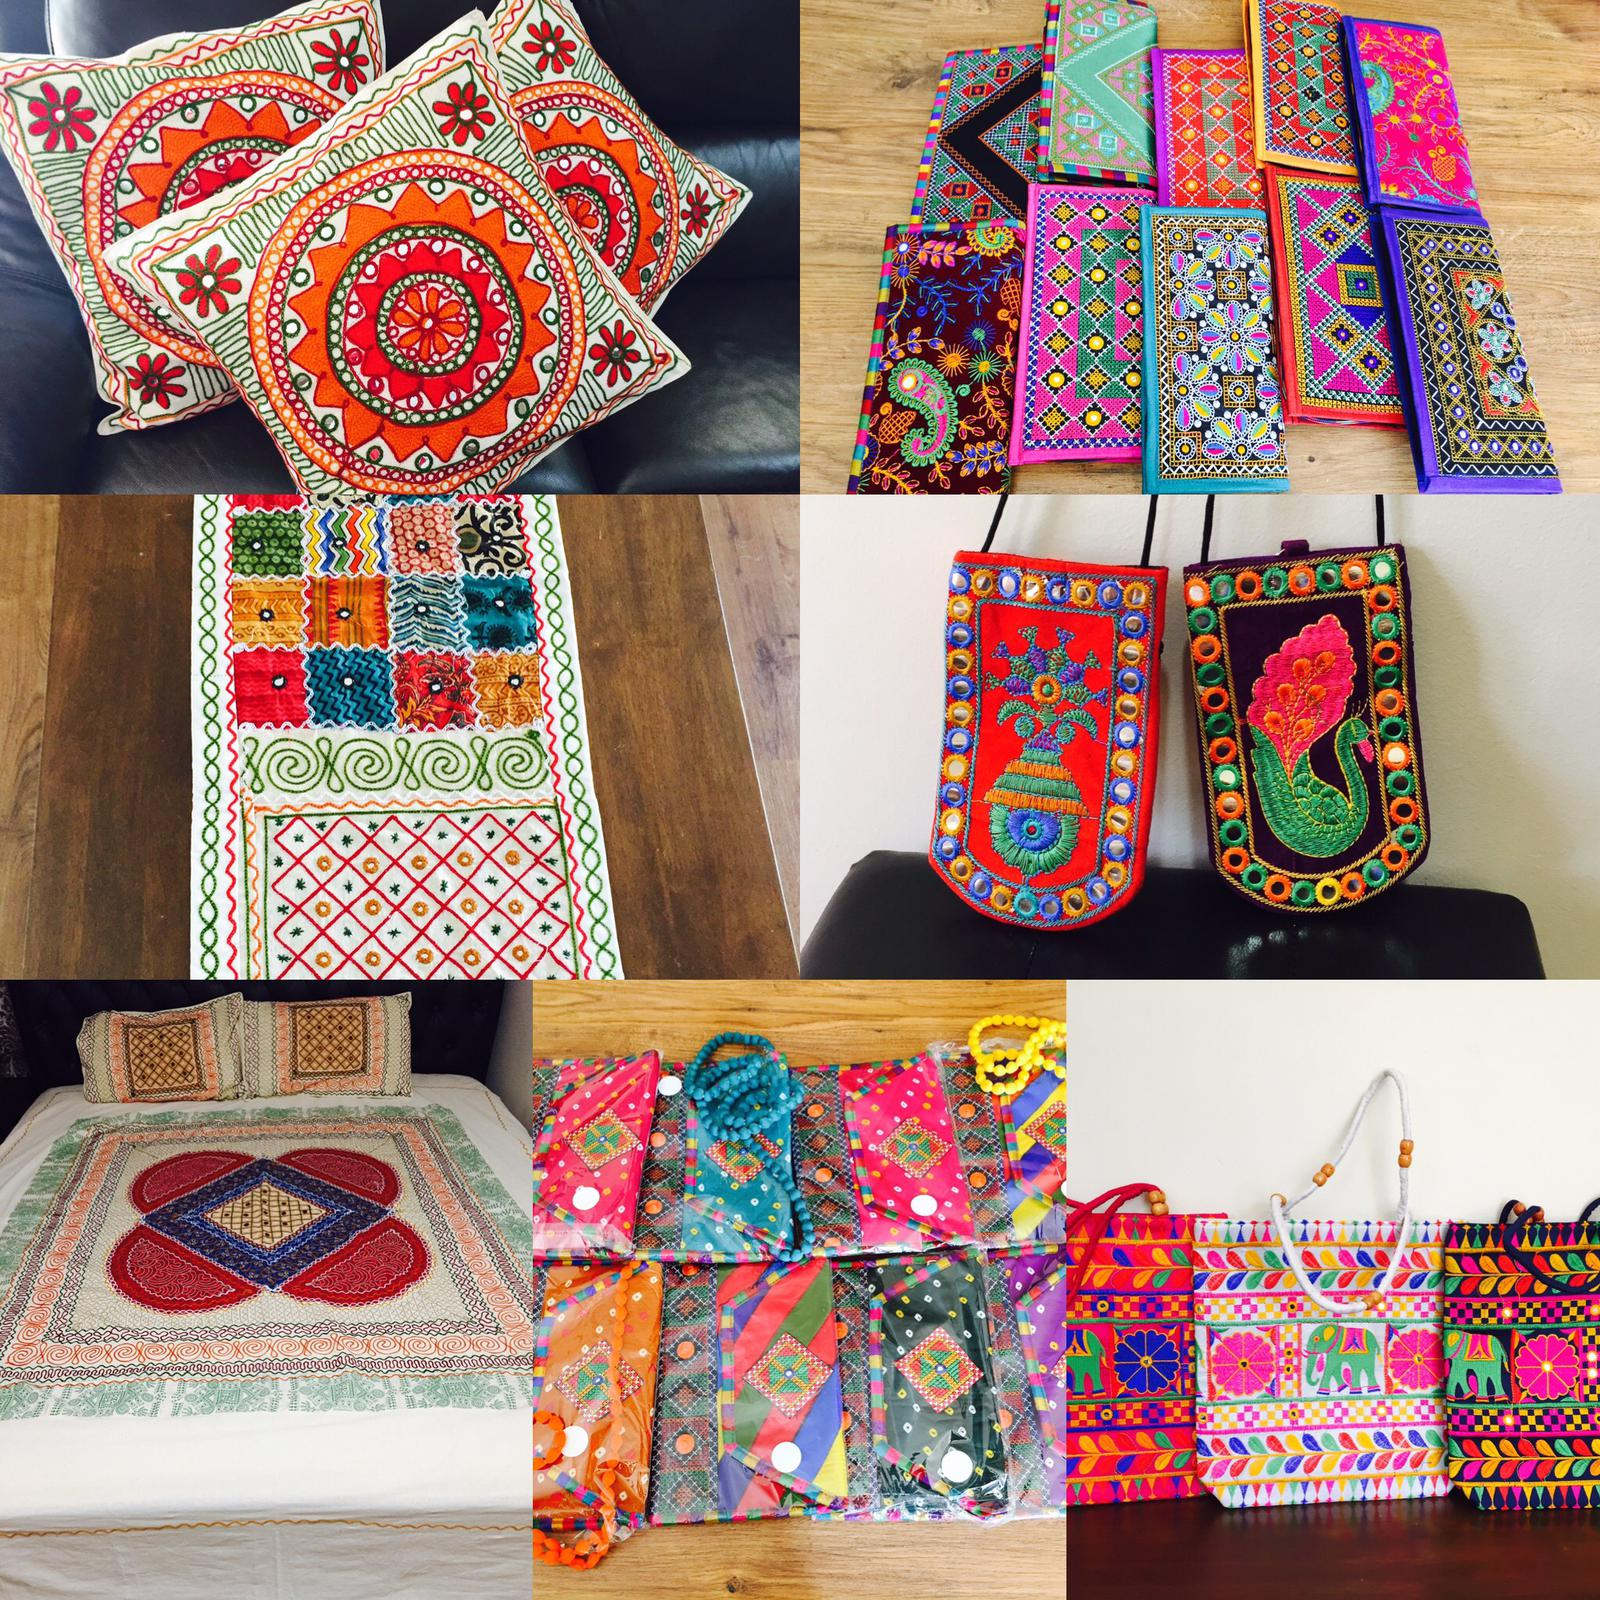 Handcrafted embroidered handbags,cushion covers, bedcovers , table runners.